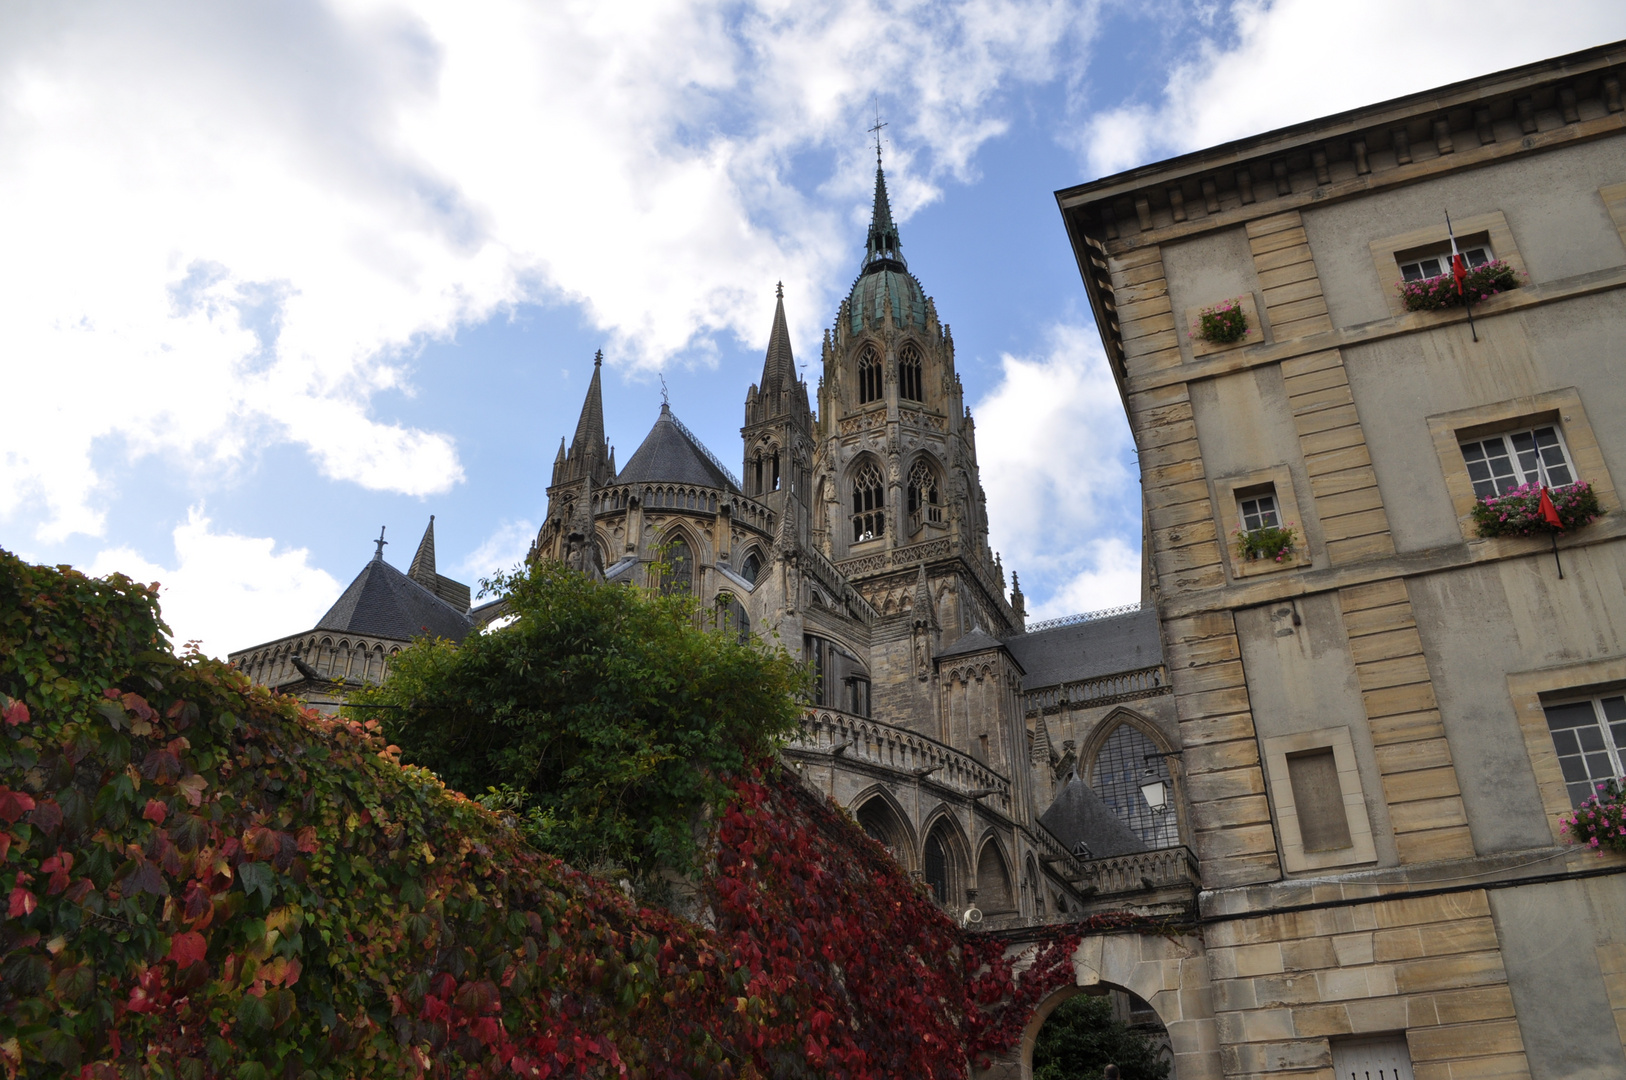 Cathedral de Bayeux